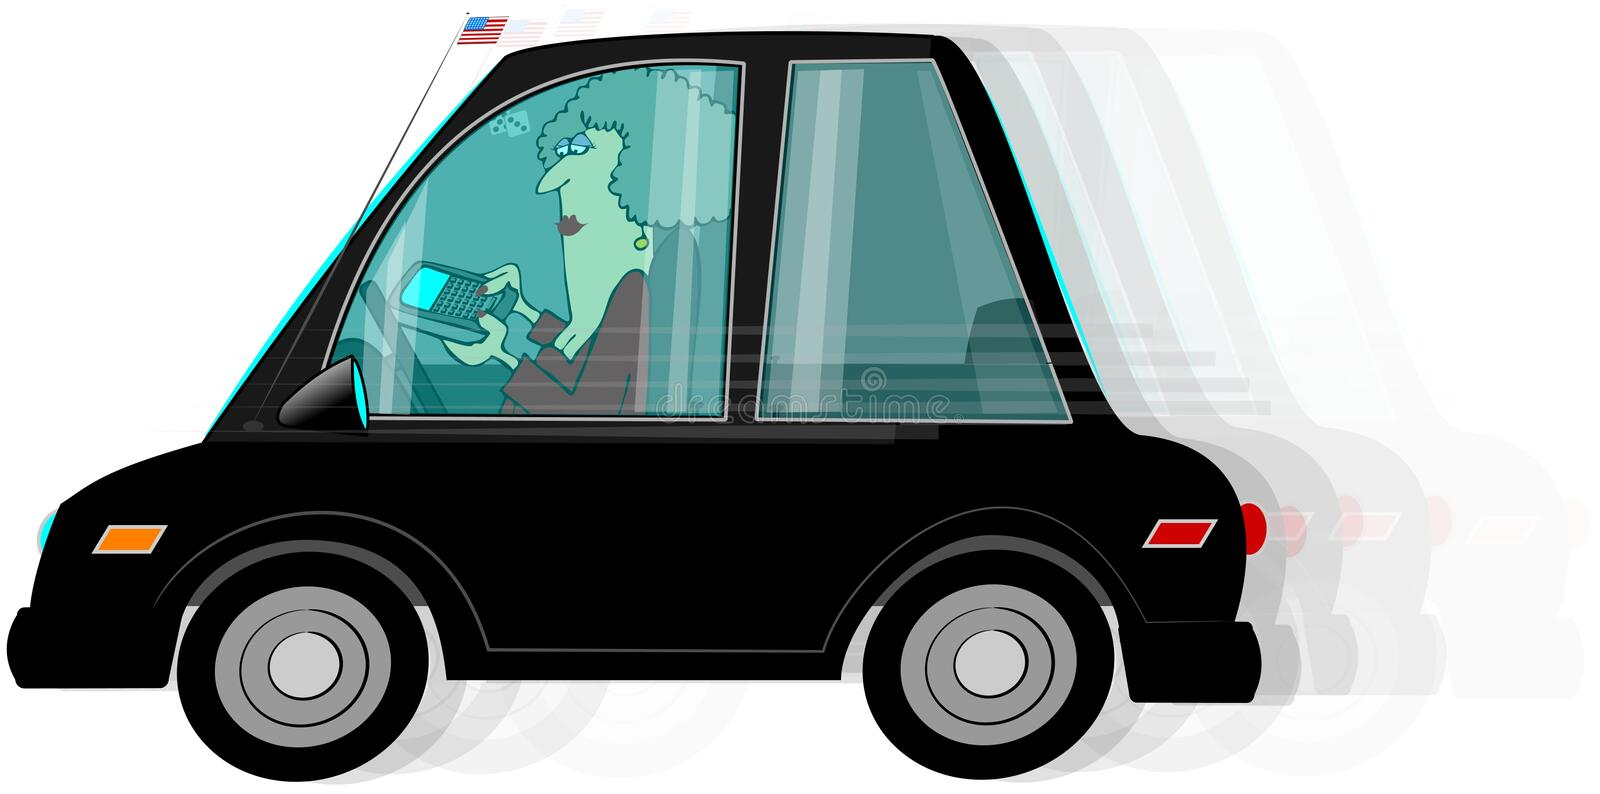 Texting While Driving stock illustration